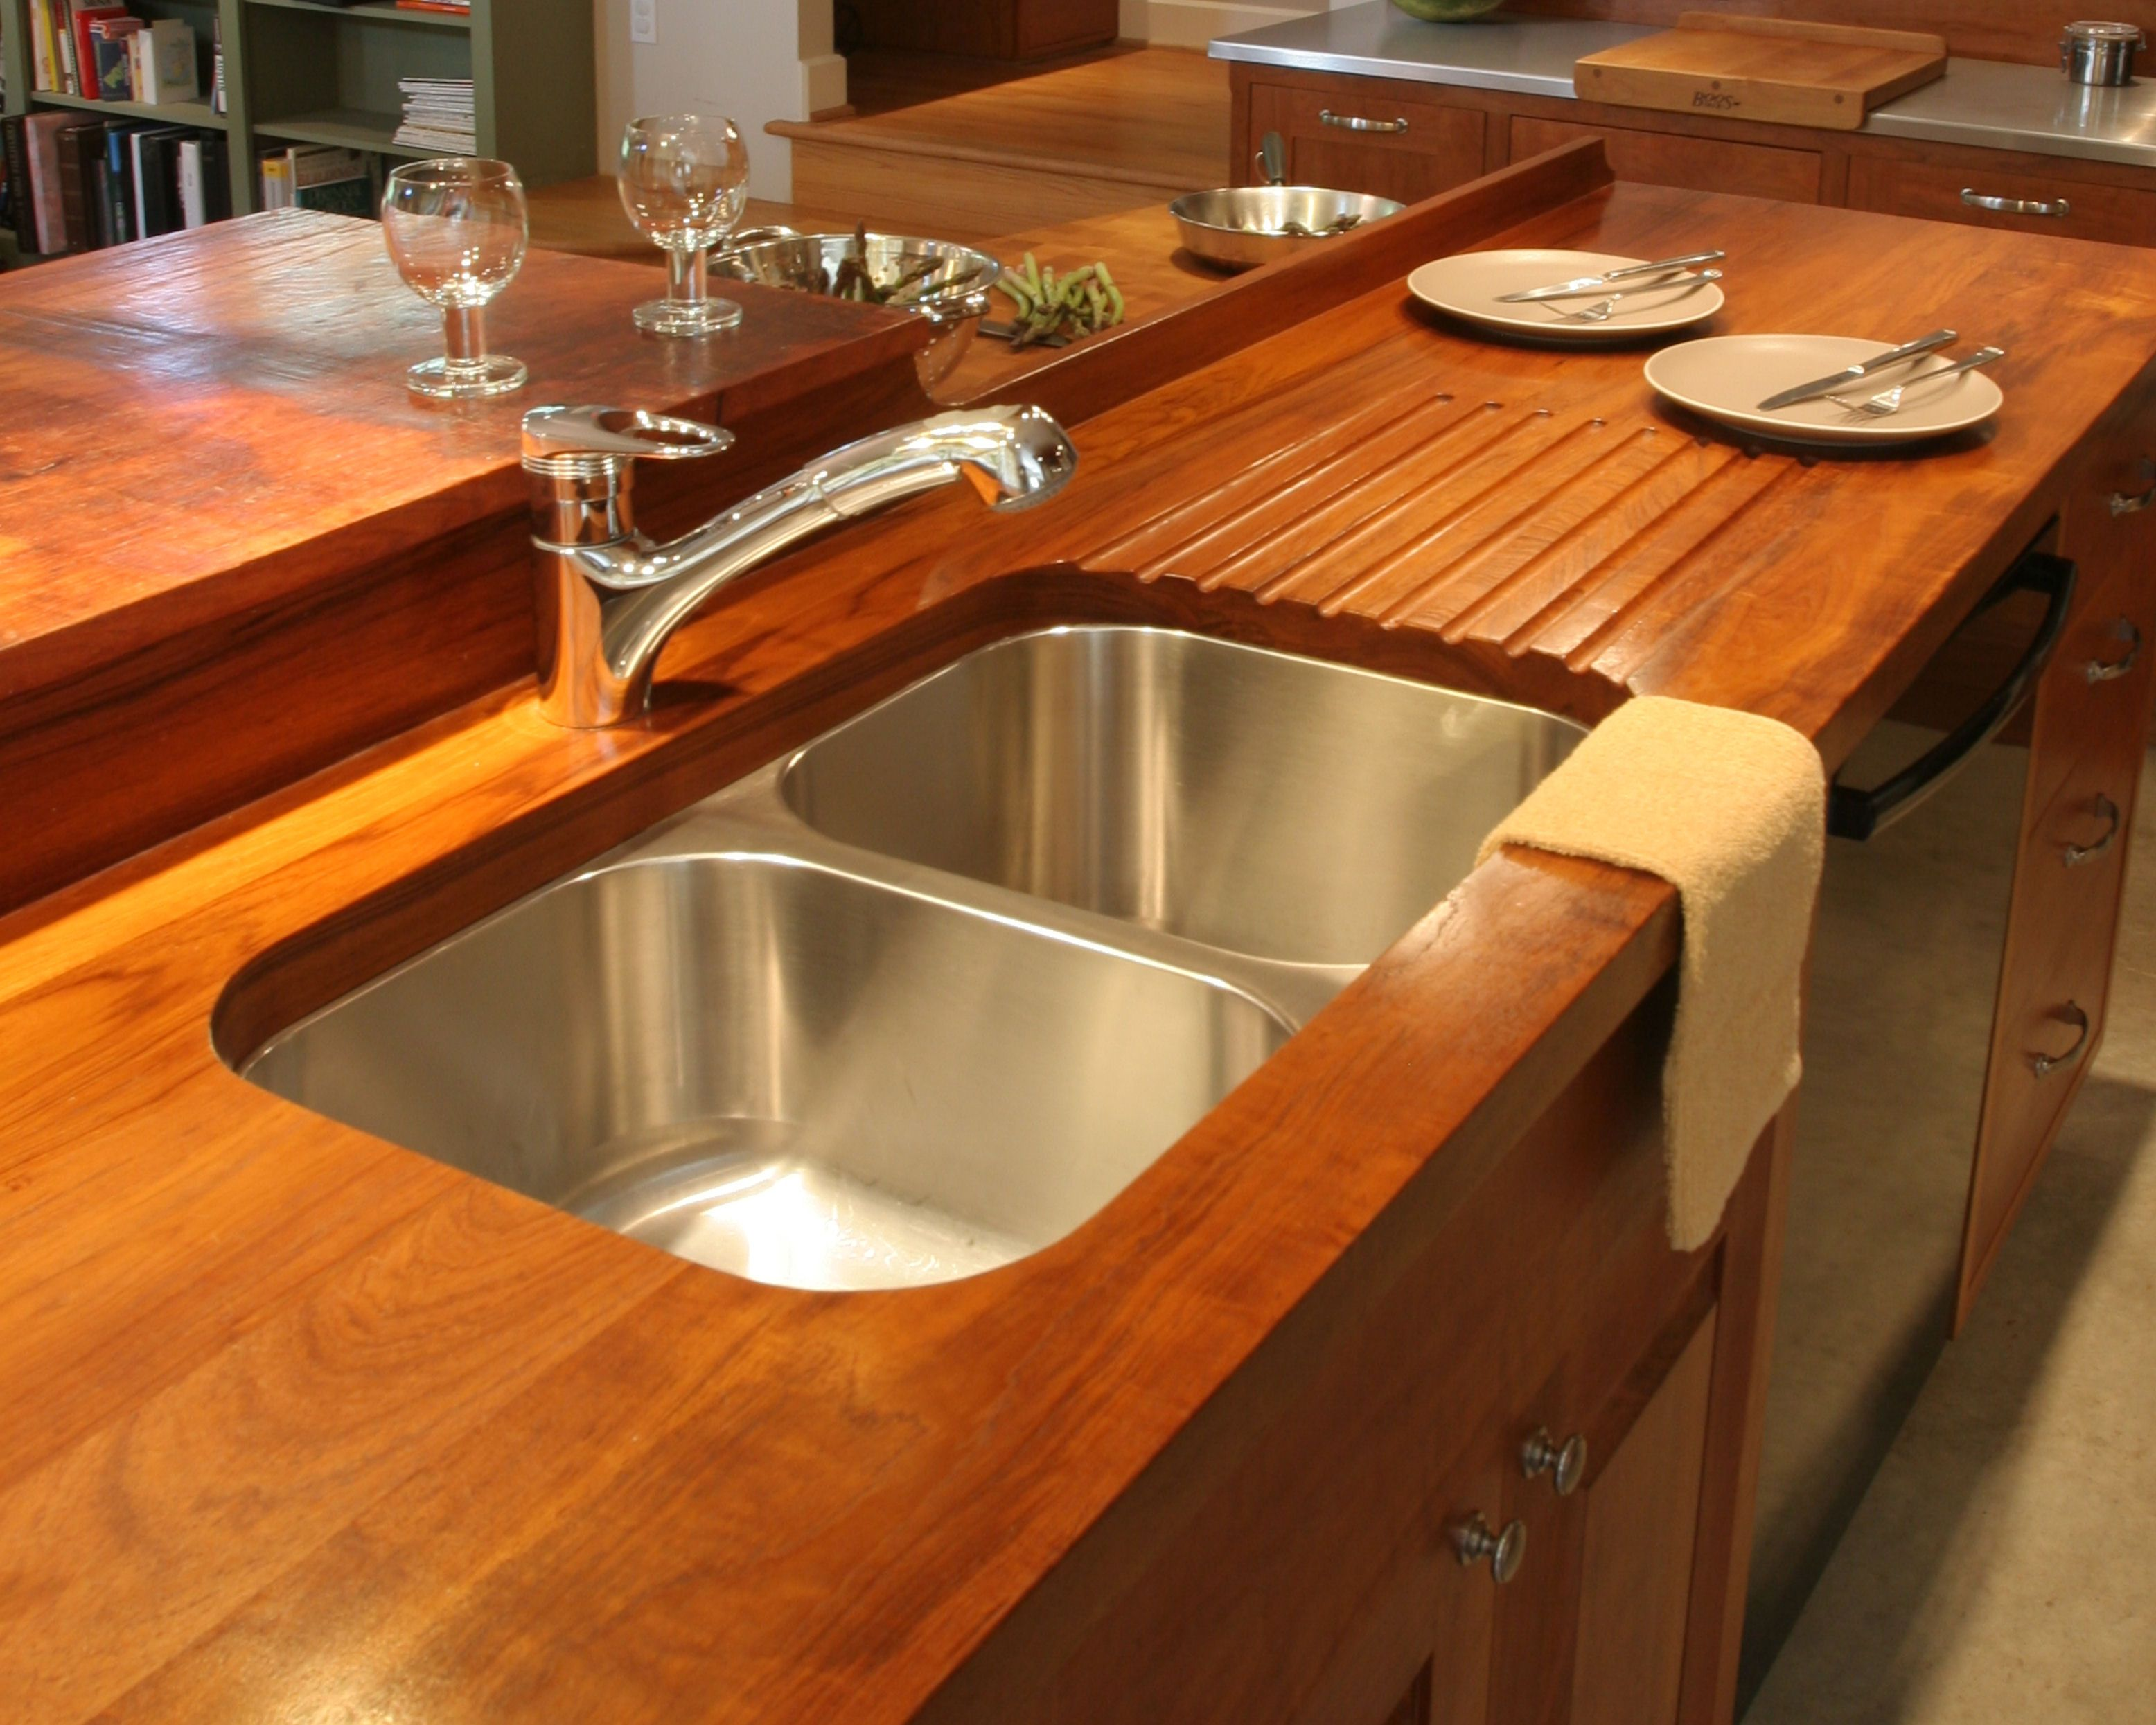 custom solid wood face grain teak counter top with integrated